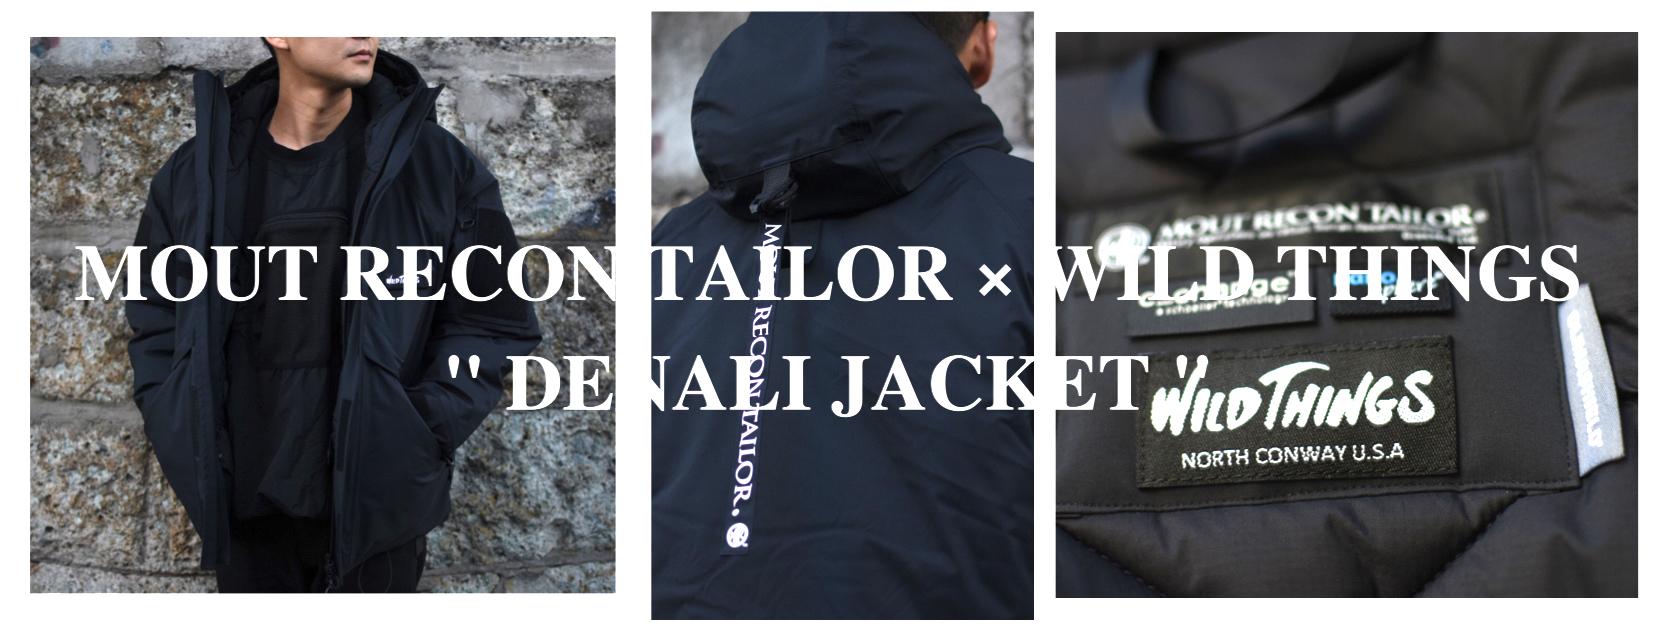 mout recon tailor × wild things denali jacket